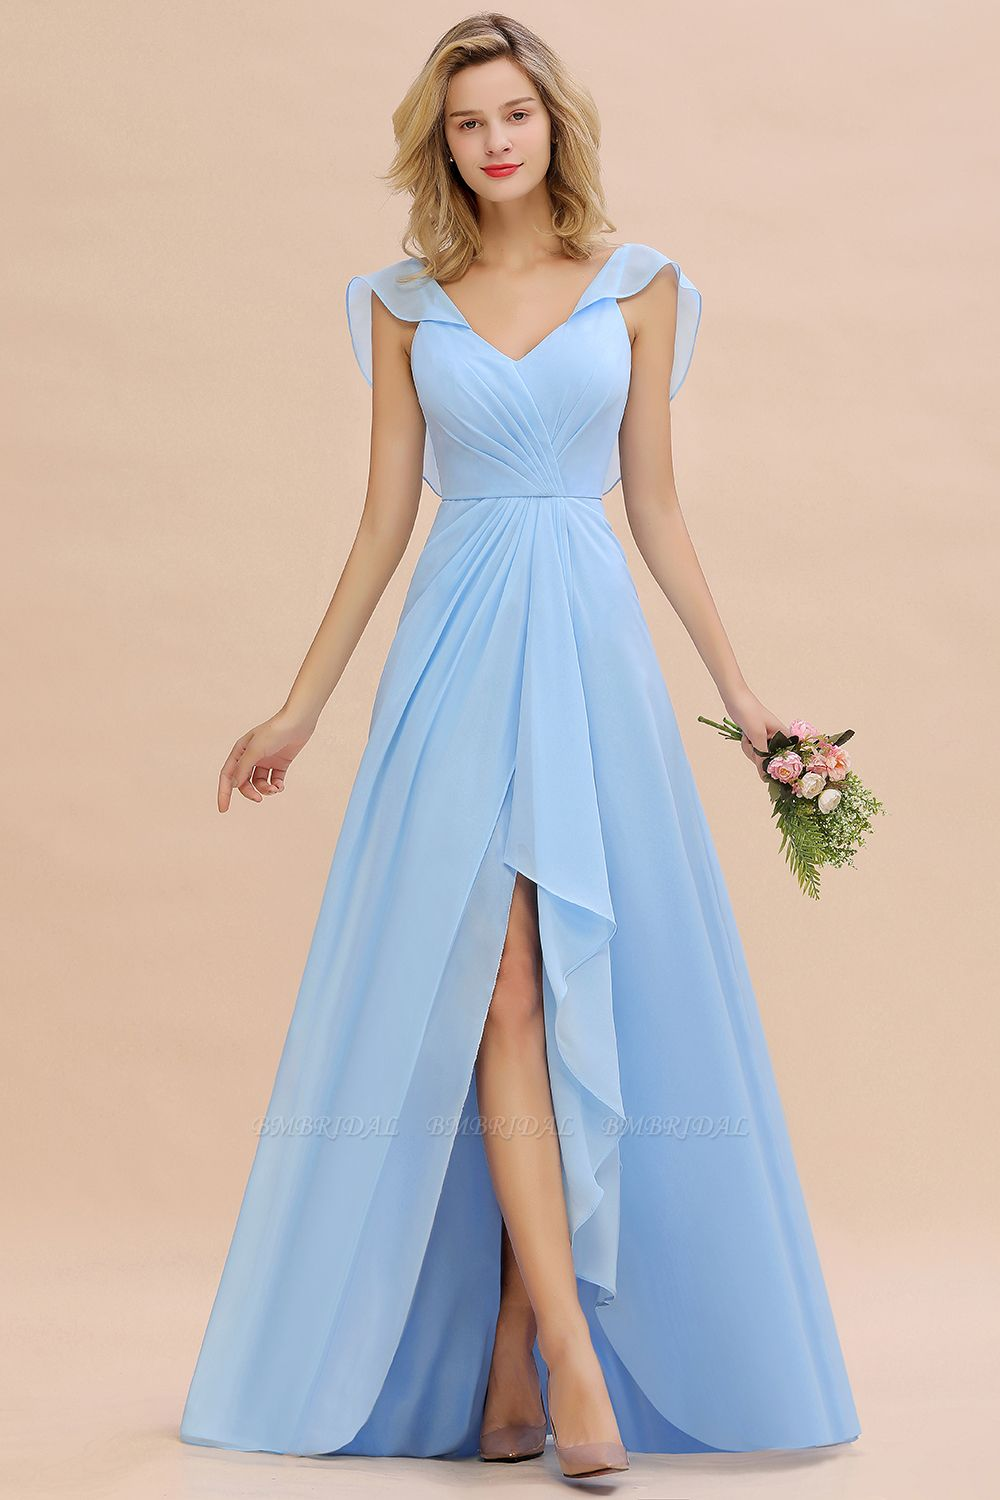 How To Find An Appropriate Bridesmaid Dress